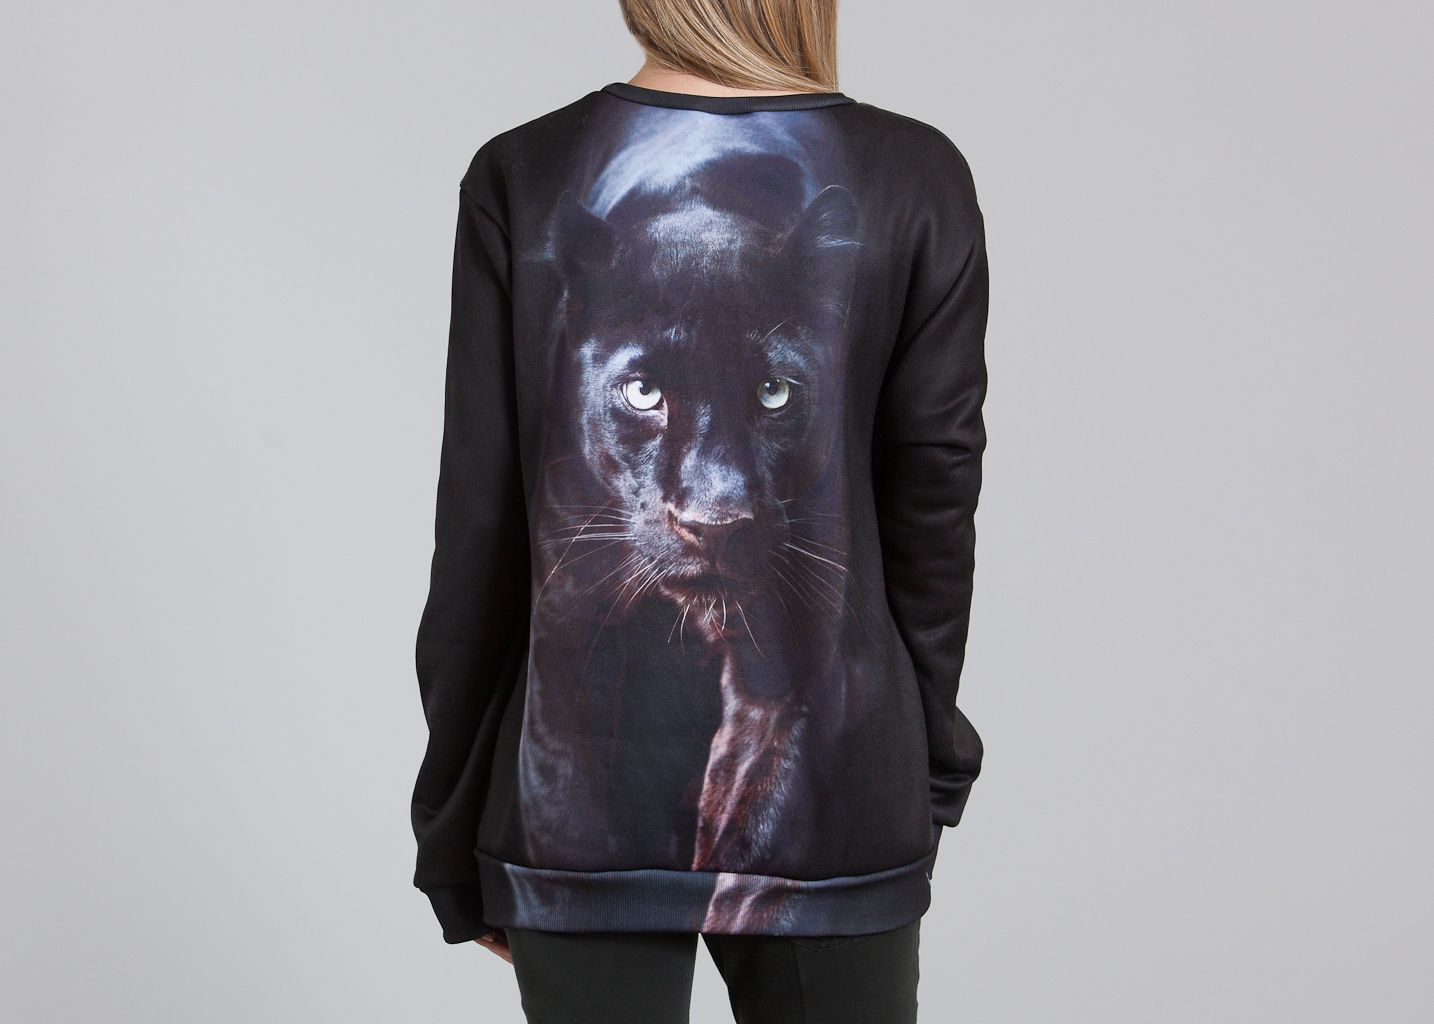 Grimes Sweatshirt - Aloha From Deer